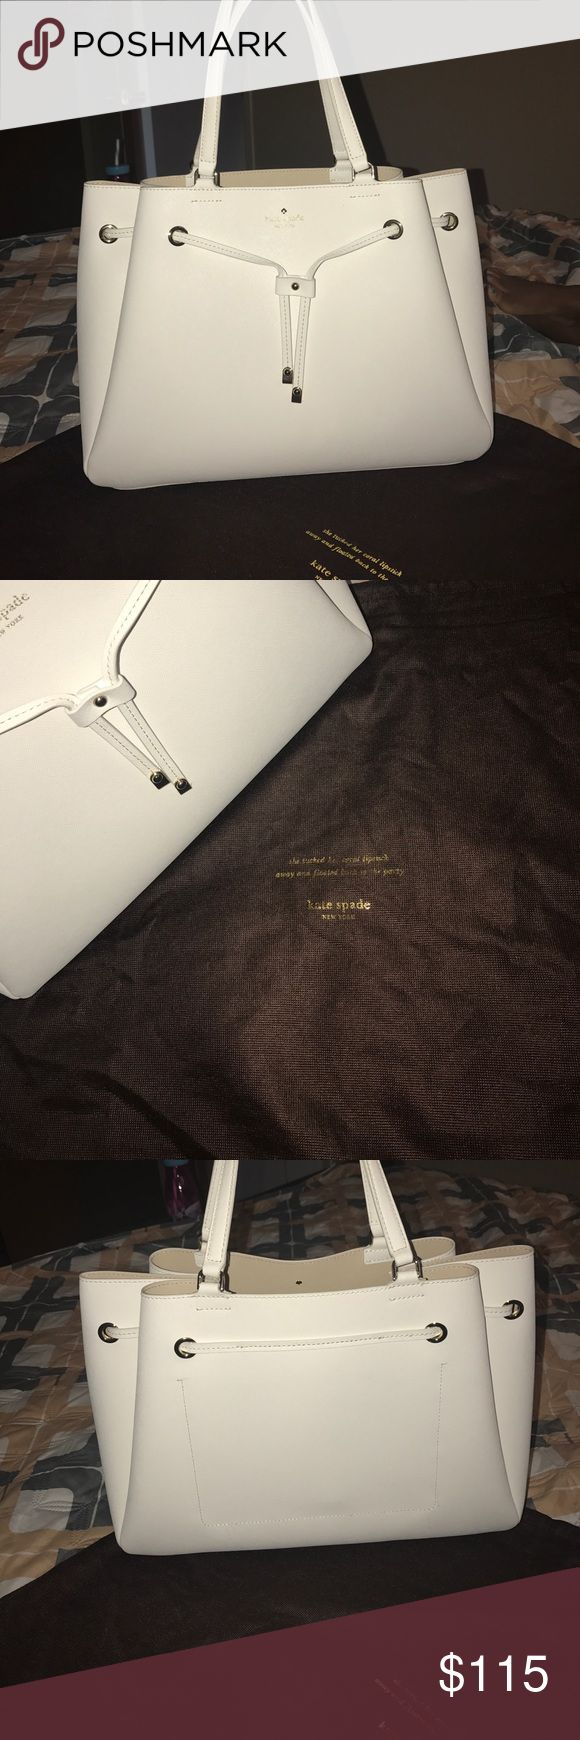 Cream Kate Spade Bag 💼 Beautiful Cream Kate Spade Bag like new only worn once no stains no marks it's medium/large comes with dust bag purchased from Nordstrom Rack still have tags kate spade Bags Totes